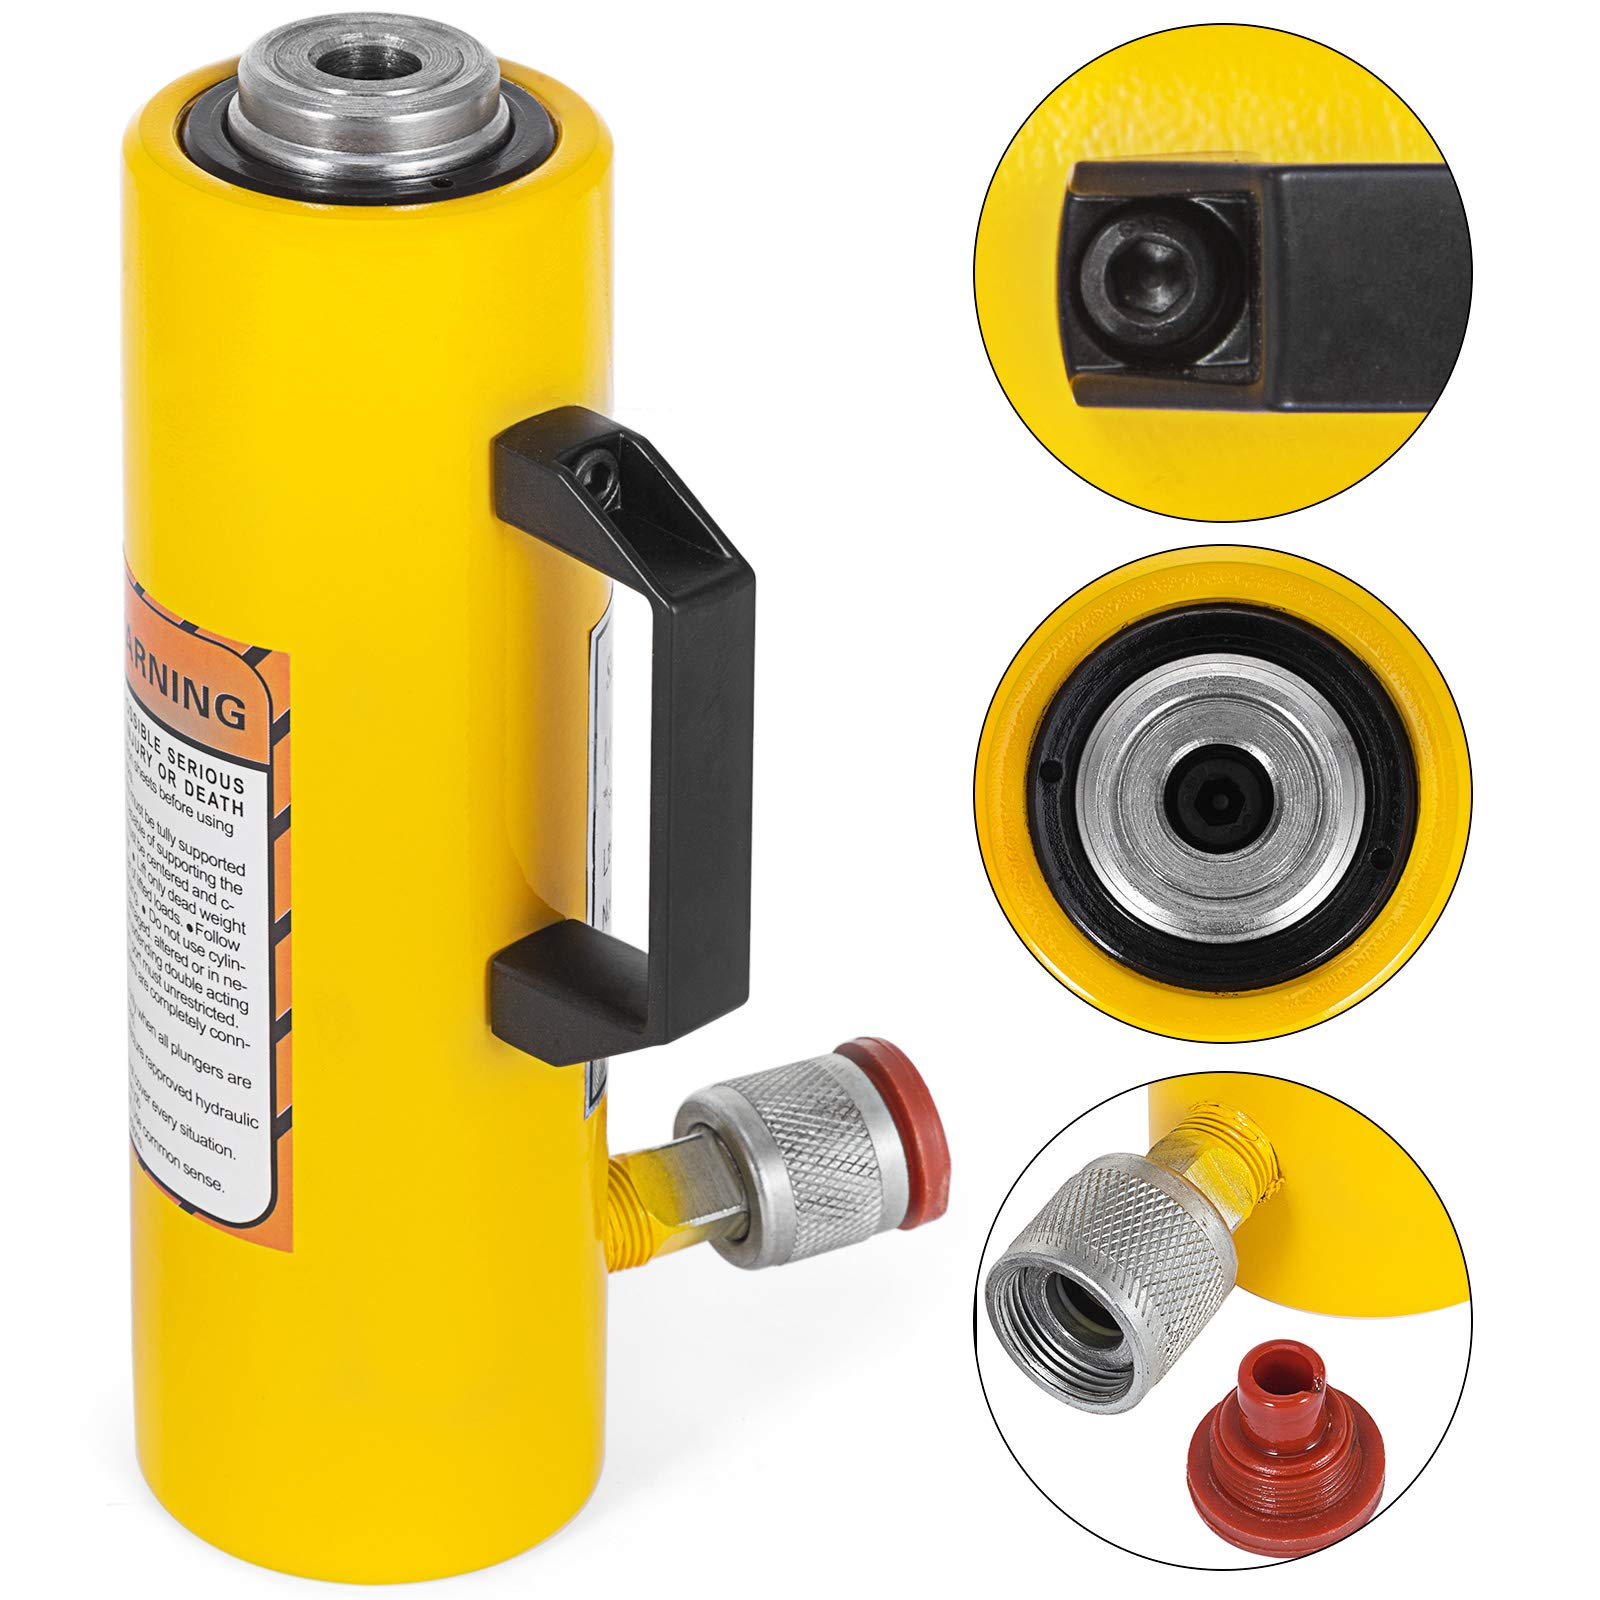 Mophorn 10T 6'' Stroke Hydraulic Cylinder Jack Solid Single Acting Hydraulic Ram Cylinder 150mm Hydraulic Lifting Cylinders for Riggers Fabricators (10T 6'') by Mophorn (Image #1)